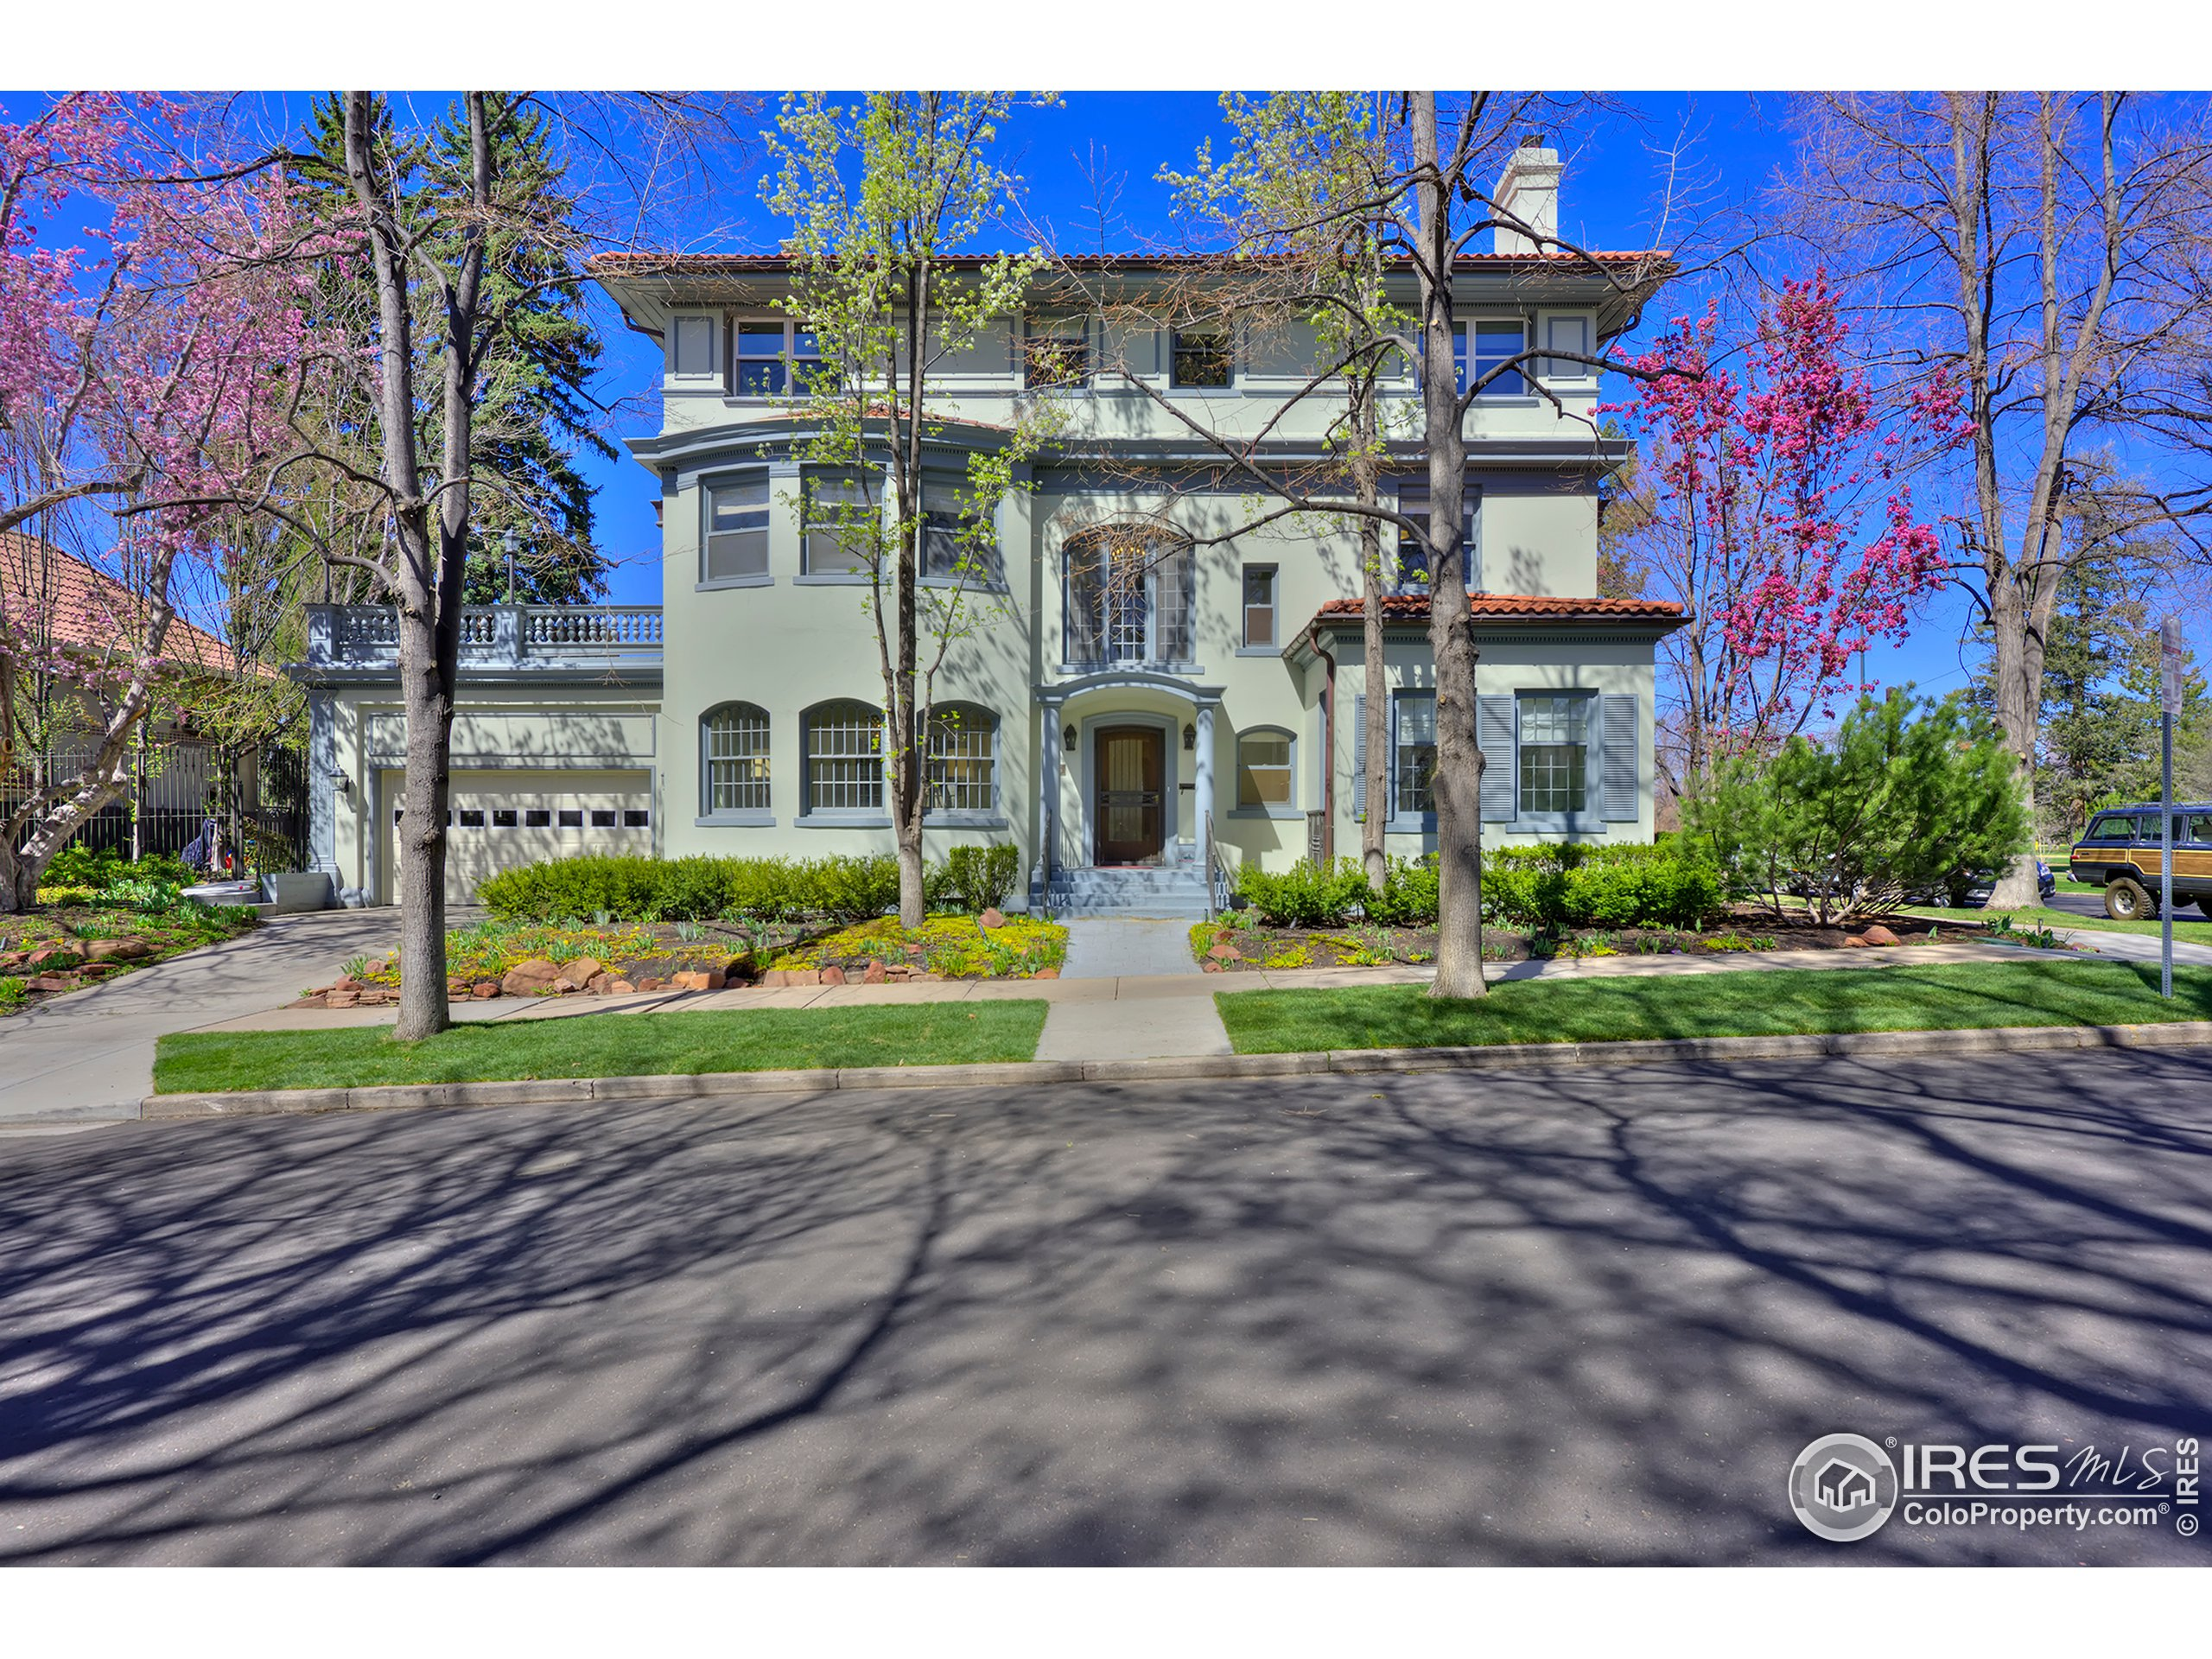 Once in a lifetime opportunity to own this stunning Neoclassical masterpiece named 2018 HOME OF THE YEAR by 5280 Magazine. Completely updated with a refined signature style rooted in tradition without a detail missed in this historic home. Features include elegant main floor with abundant light, incredible master suite, & a speakeasy like getaway in the basement. Two spacious balconies provide some of the best views in Denver featuring Cheesman Park, Downtown and the mountains.